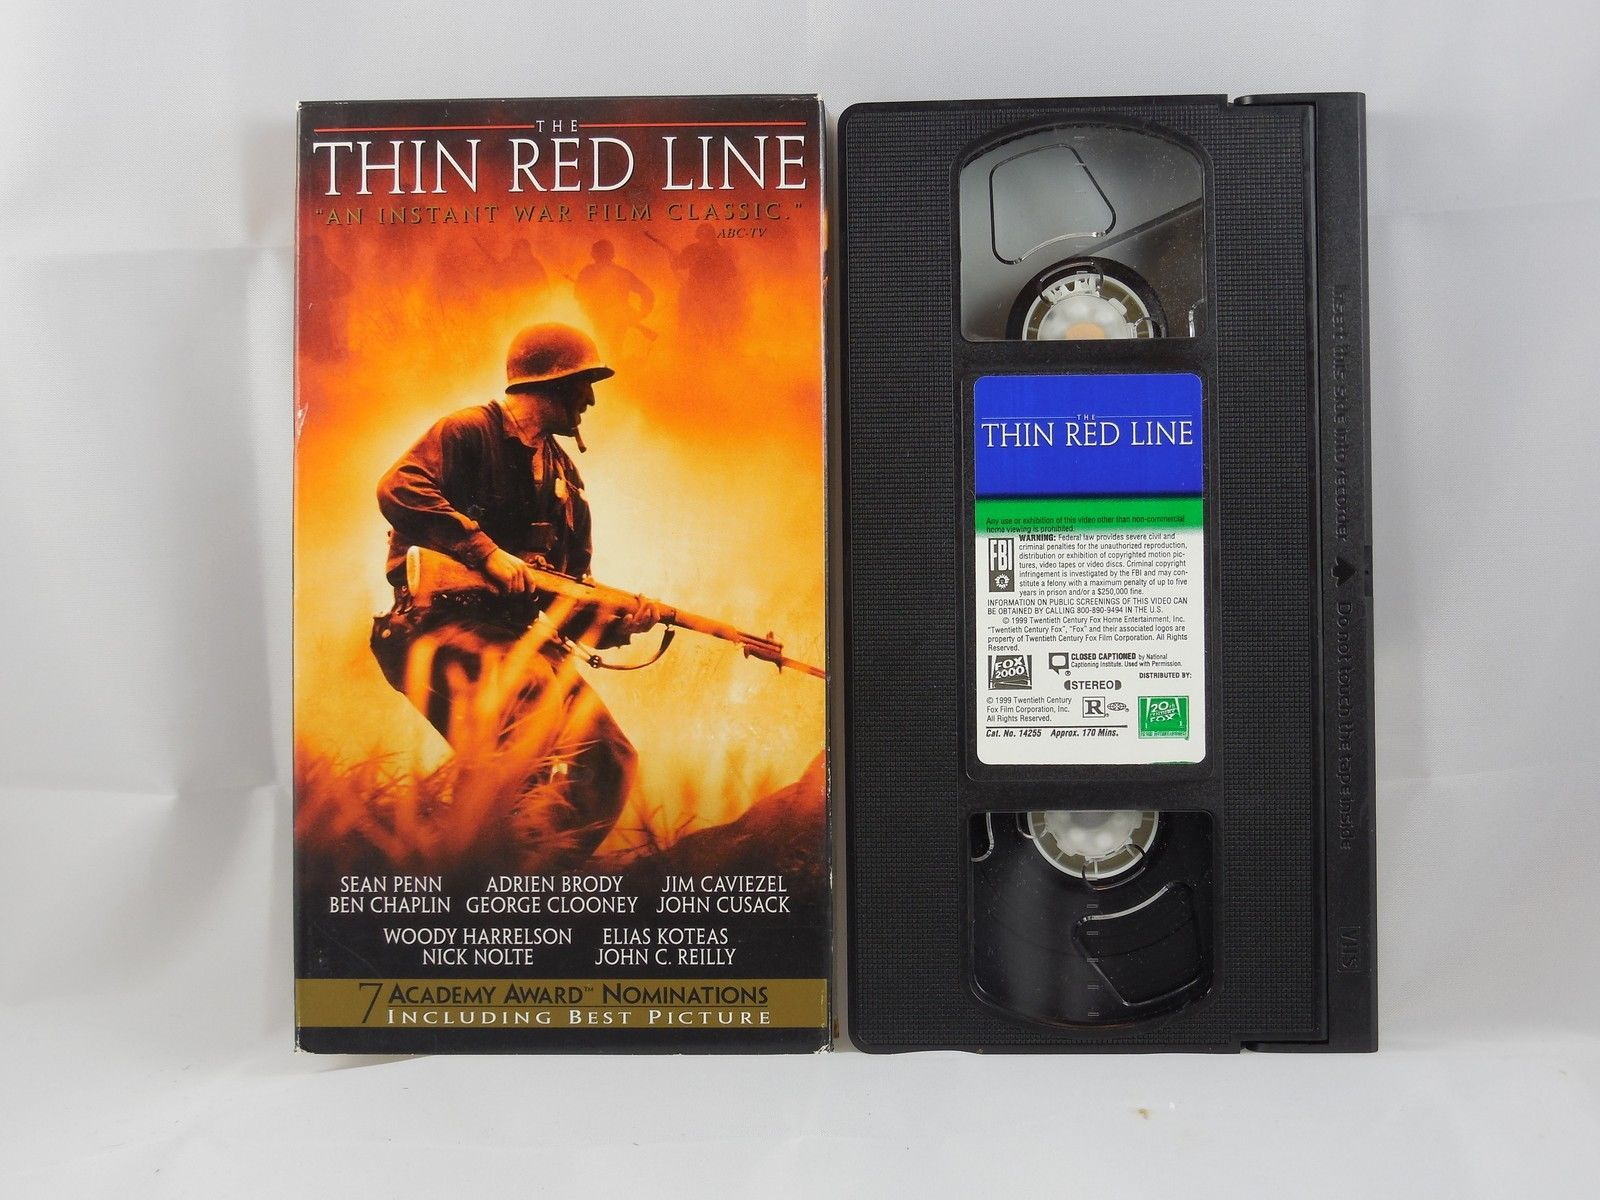 The Thin Red Line (VHS, 1999)